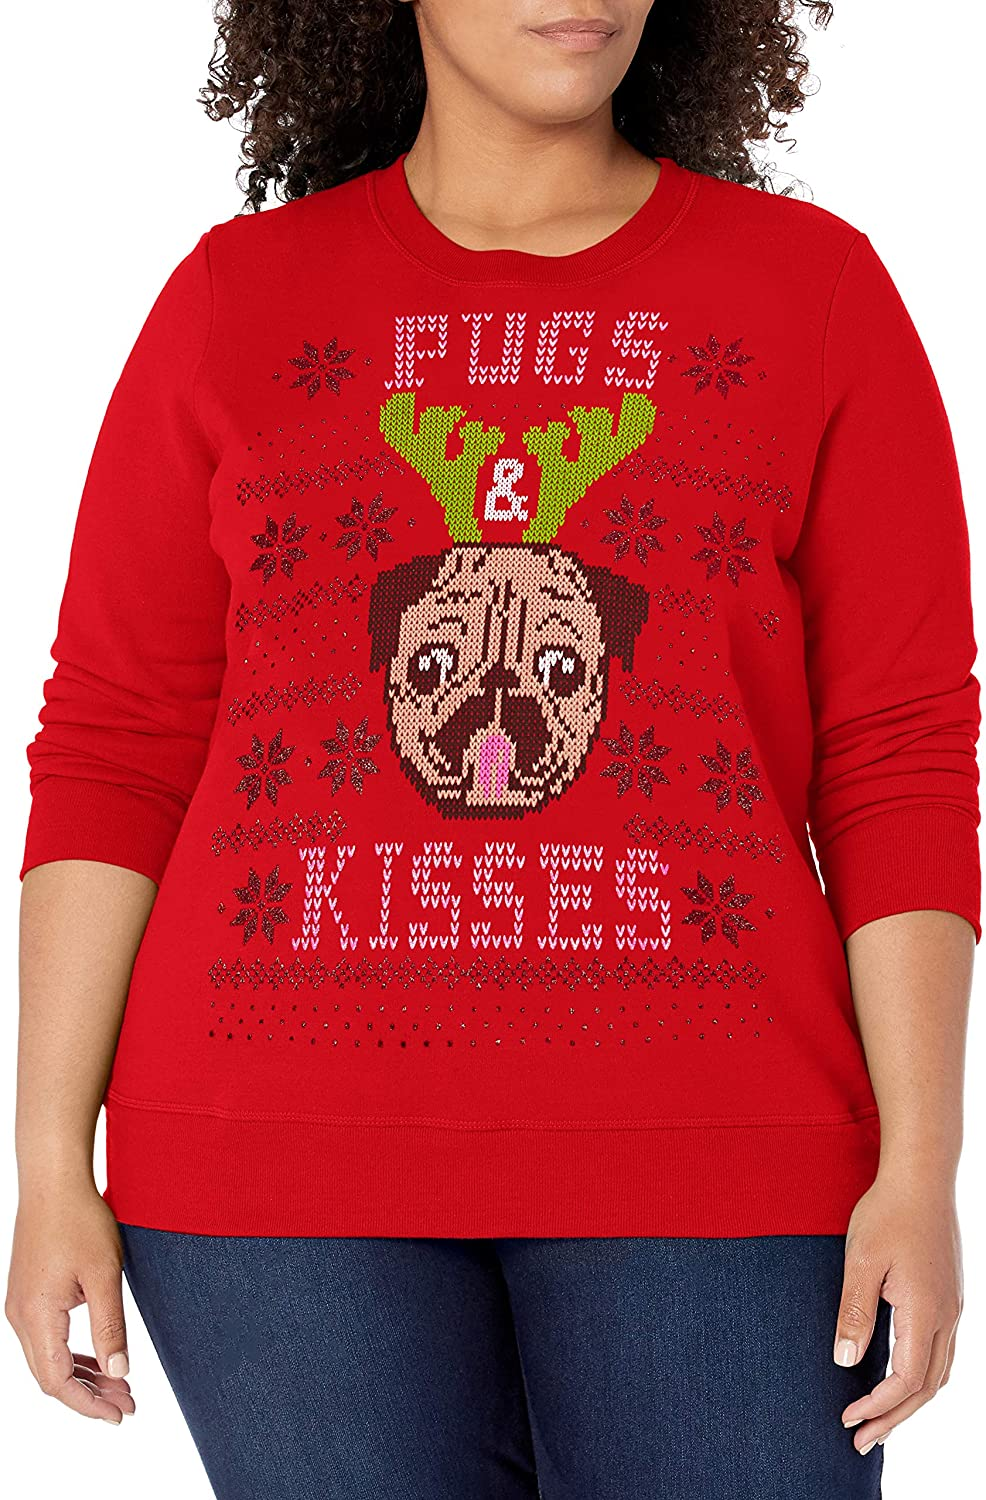 Funny Plus Size Christmas Sweaters 11